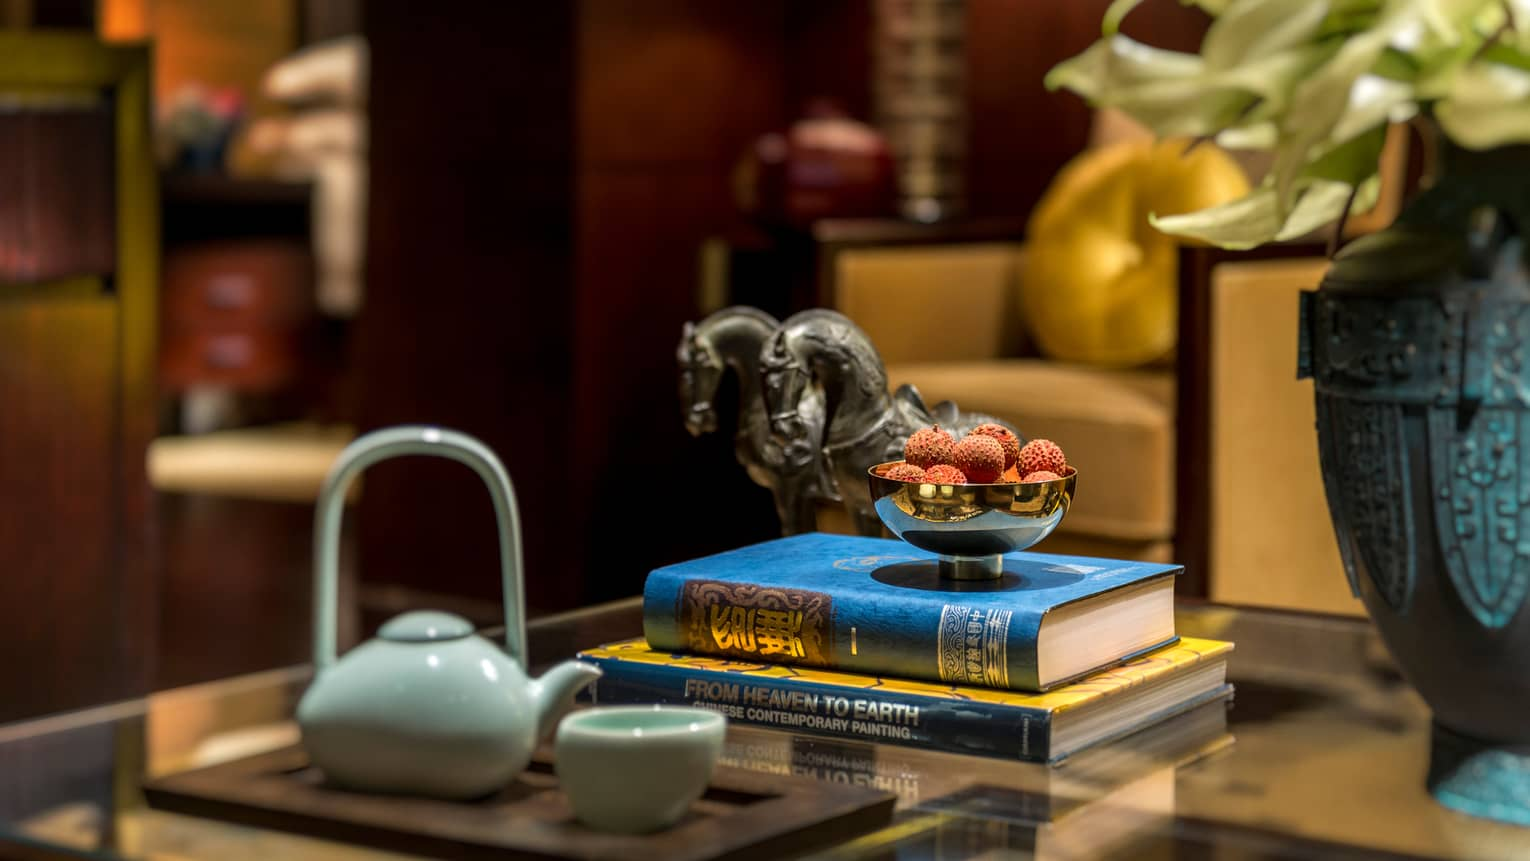 Close-up of white teapot, cup, stack of books, bowl of fruit, horse statues